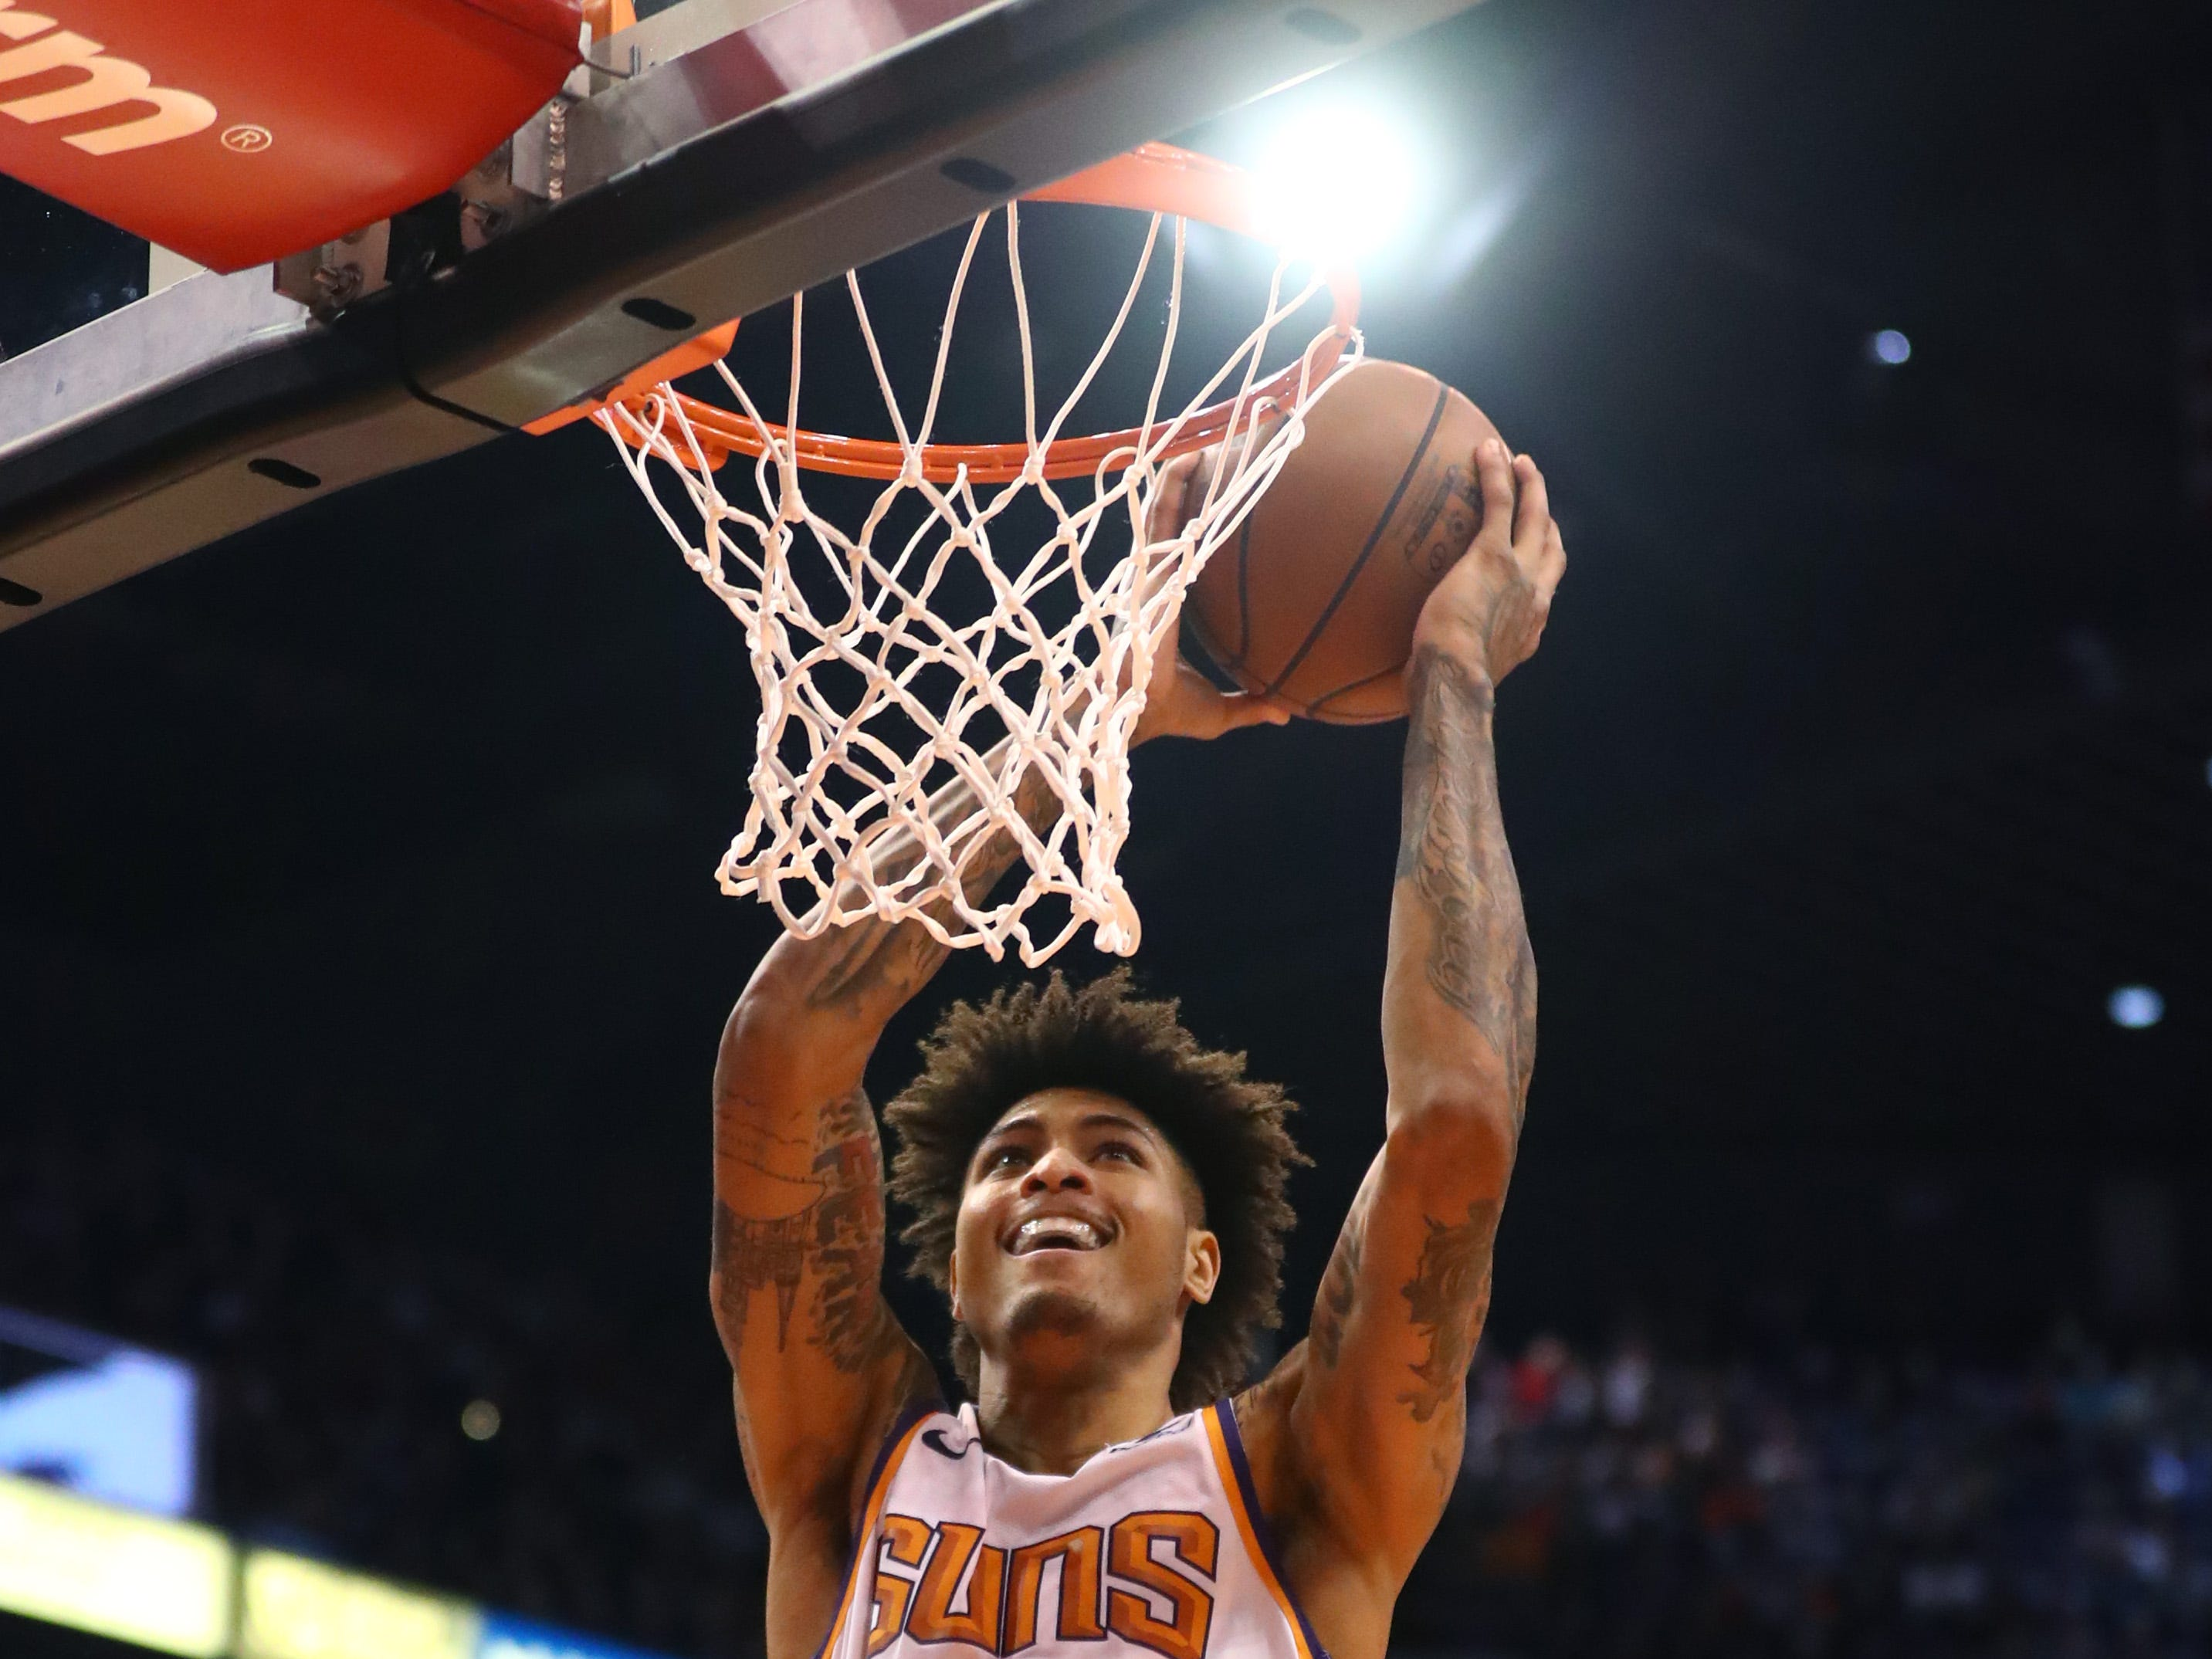 Jan 2, 2019; Phoenix, AZ, USA; Phoenix Suns forward Kelly Oubre Jr. (3) dunks the ball against the Philadelphia 76ers at Talking Stick Resort Arena. Mandatory Credit: Mark J. Rebilas-USA TODAY Sports